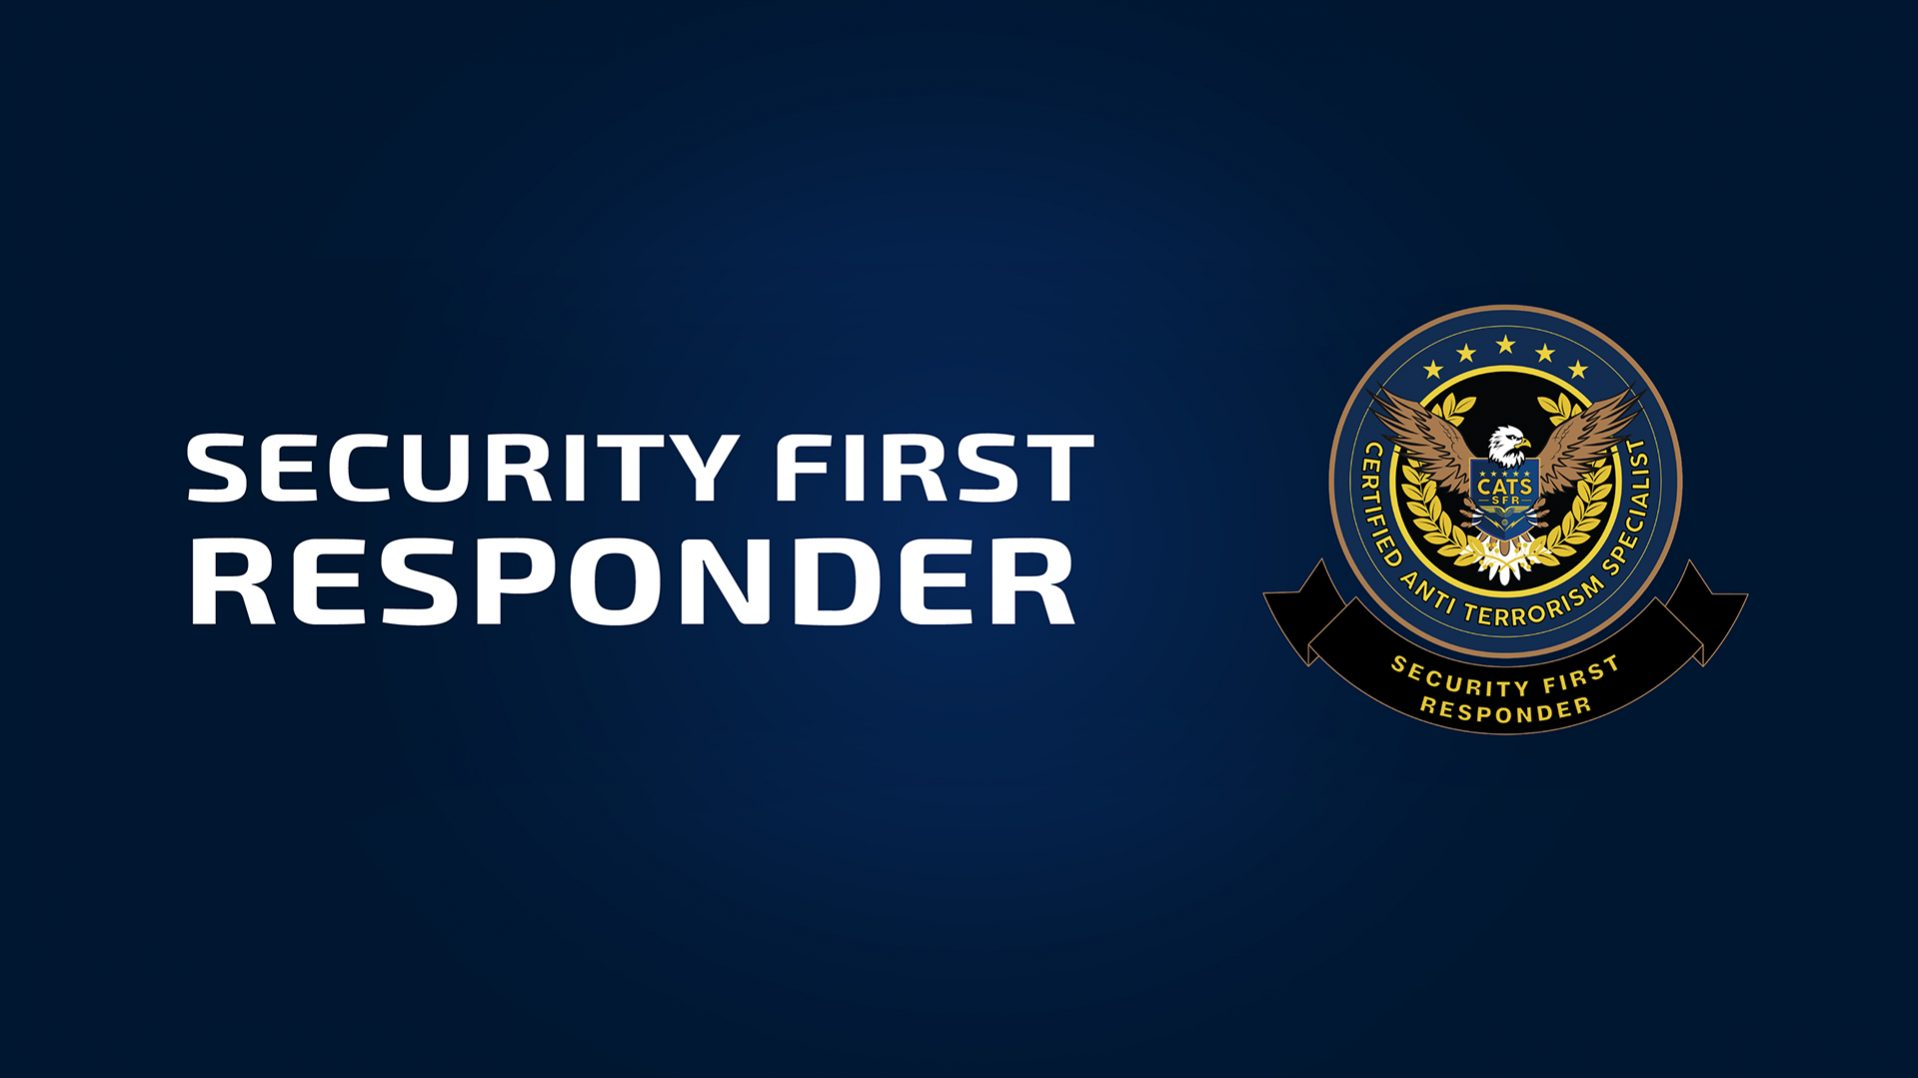 The Security First Responder (SFR)